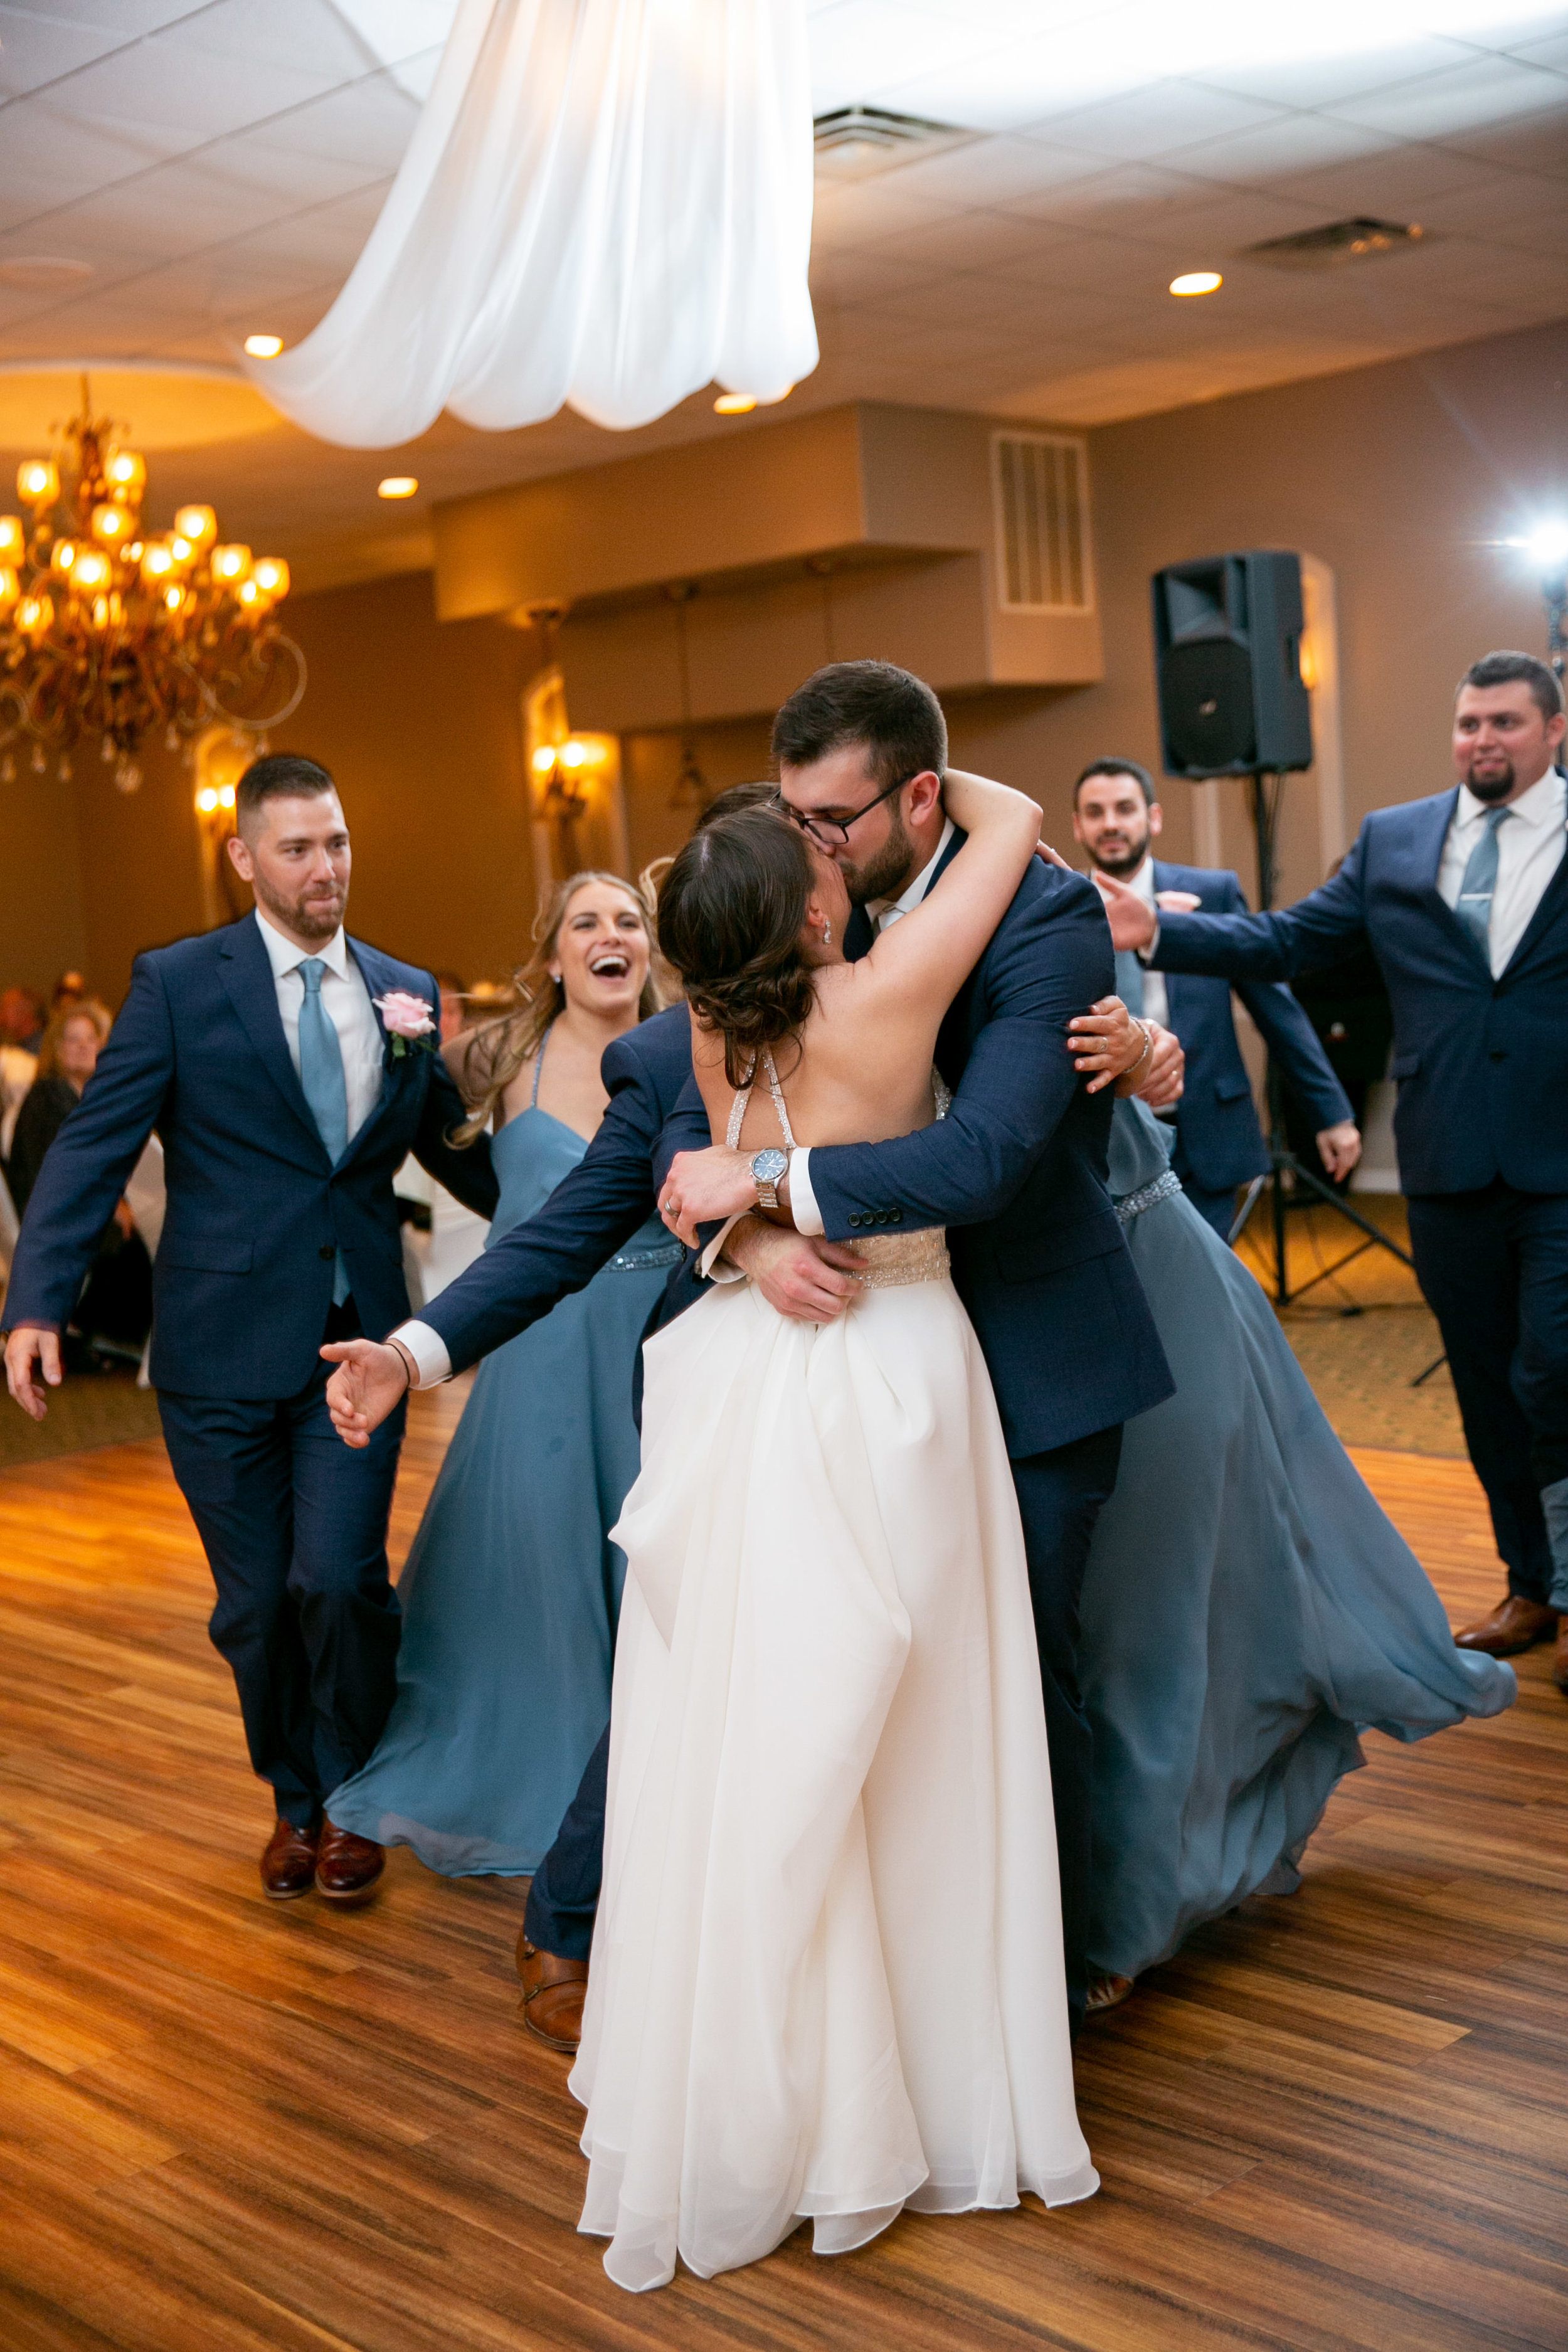 montdale-country-club-wedding-by-leahdanielsphotography66.jpg